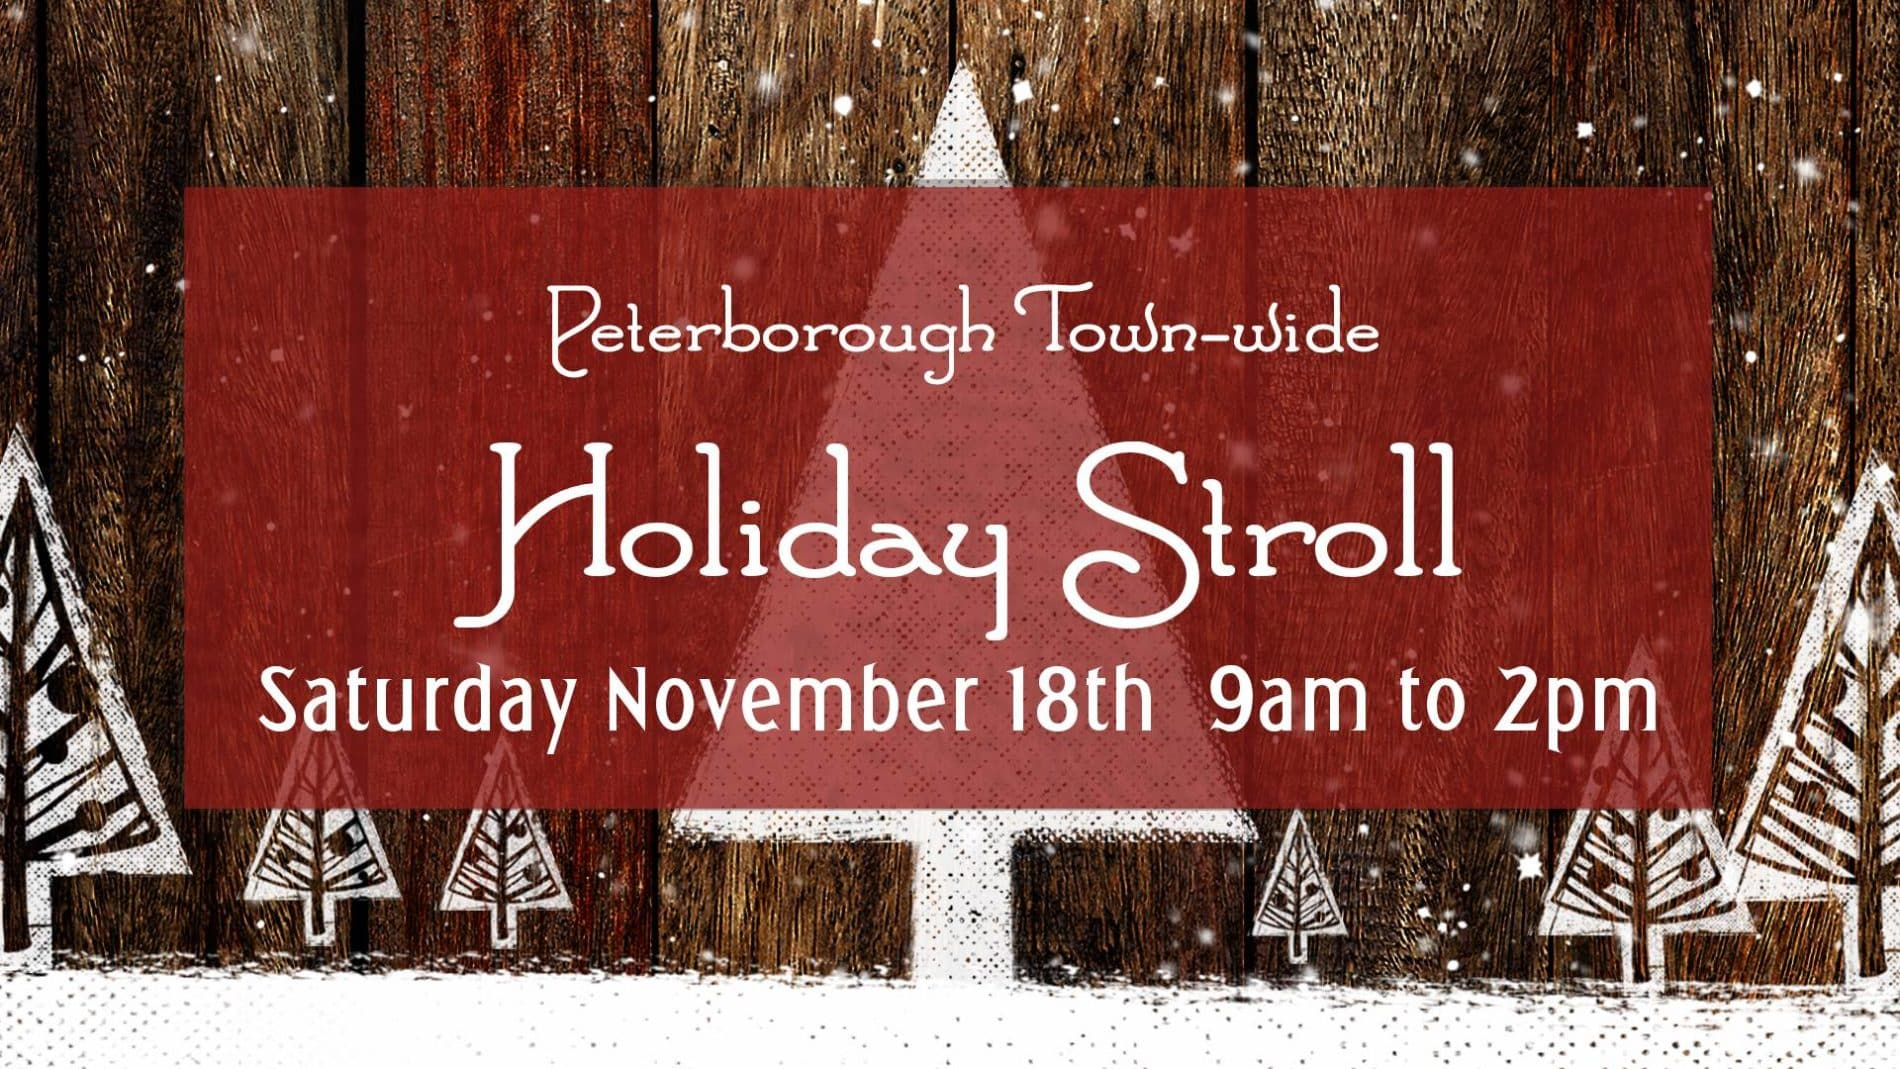 A wood sign with white trees designed on them provides a background for the Holiday Stroll hours and date